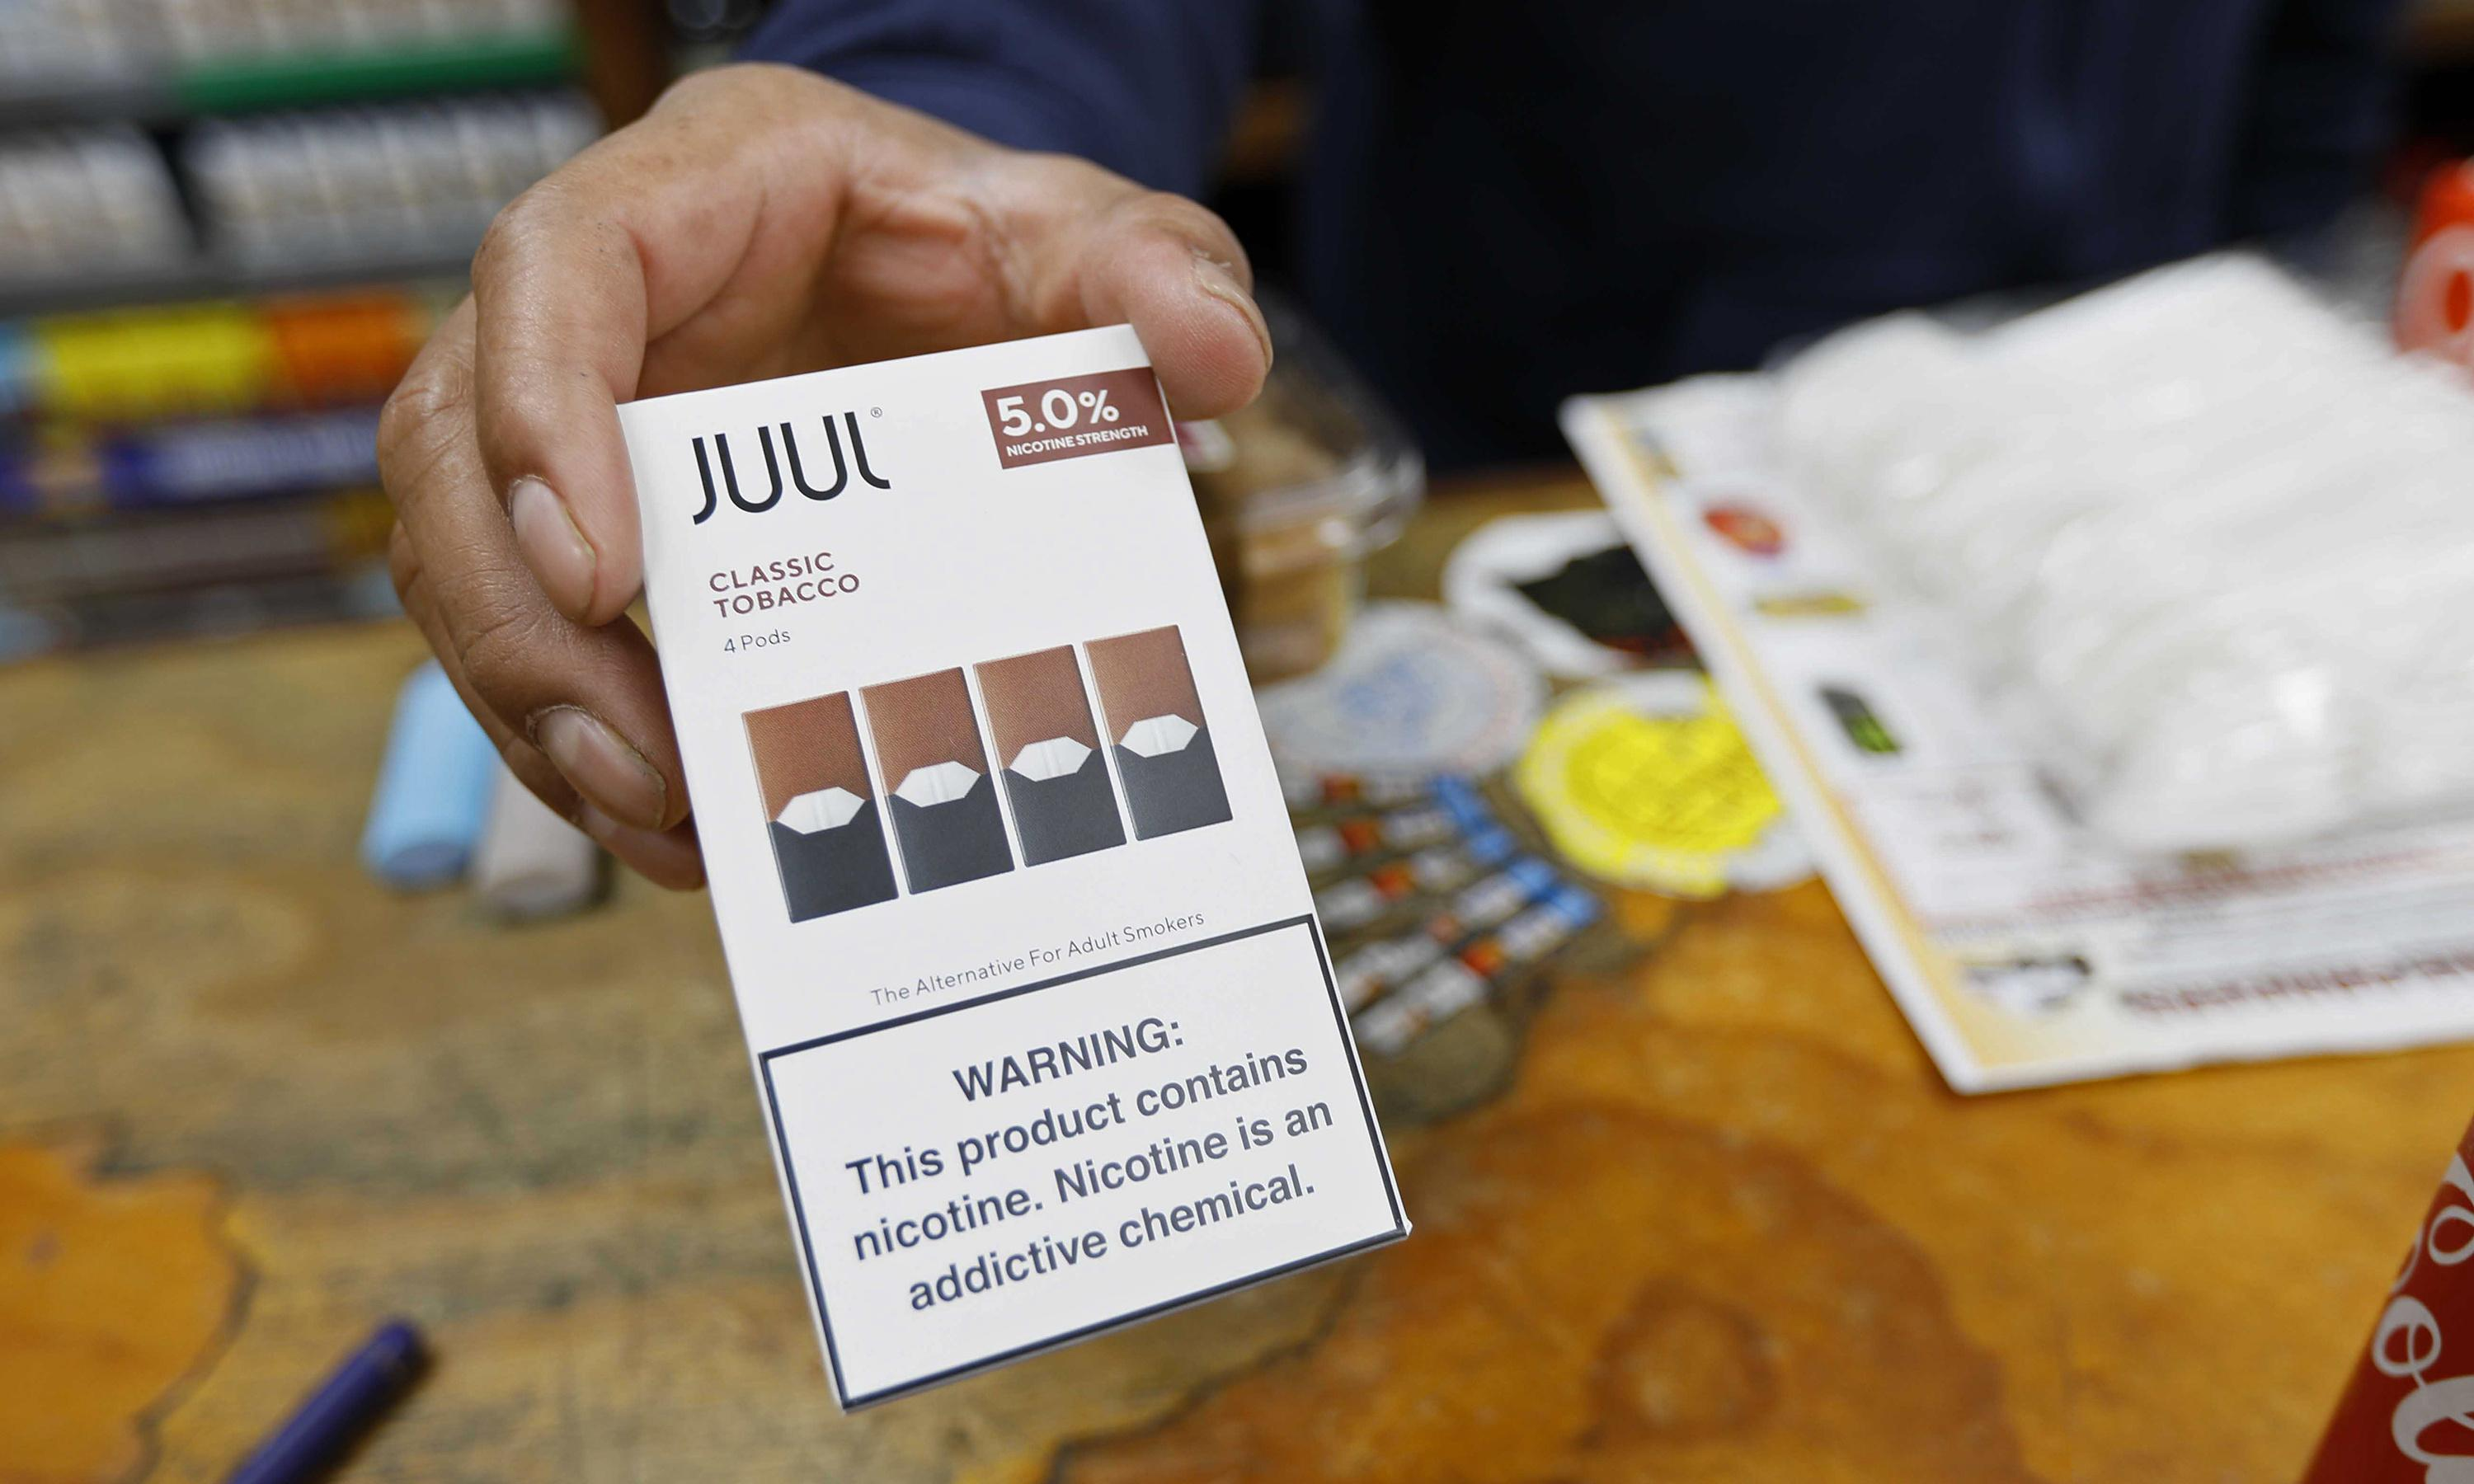 San Francisco could be first US city to ban e-cigarette sales